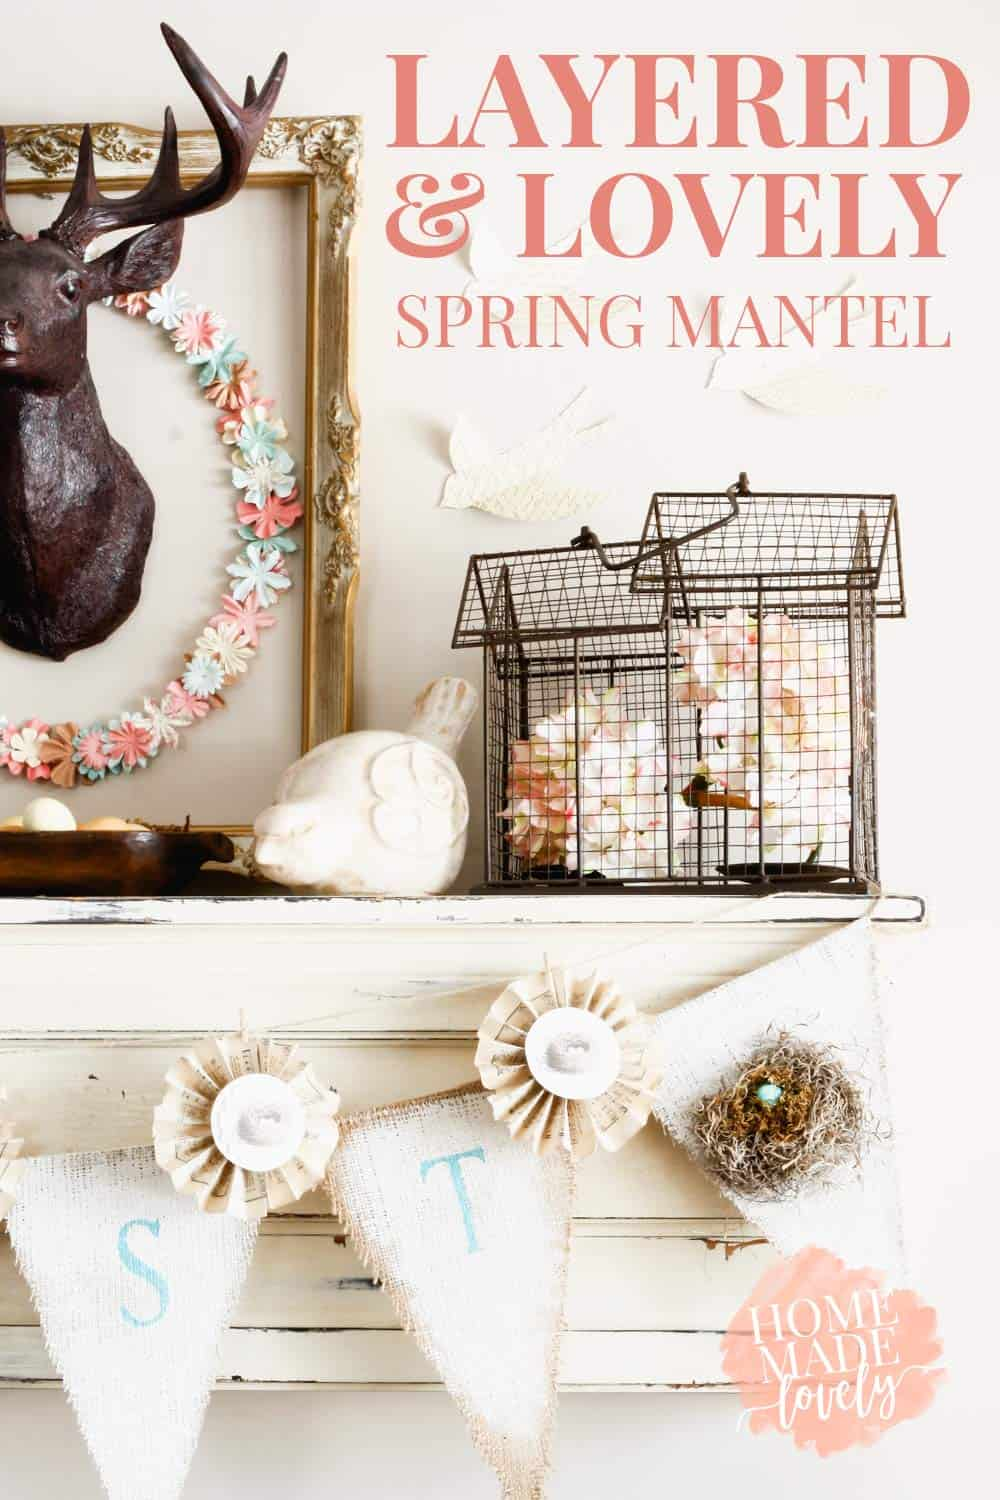 Our Layered and Lovely Spring Mantel is pretty, rustic and neutral with just a wee little bit of Spring color.